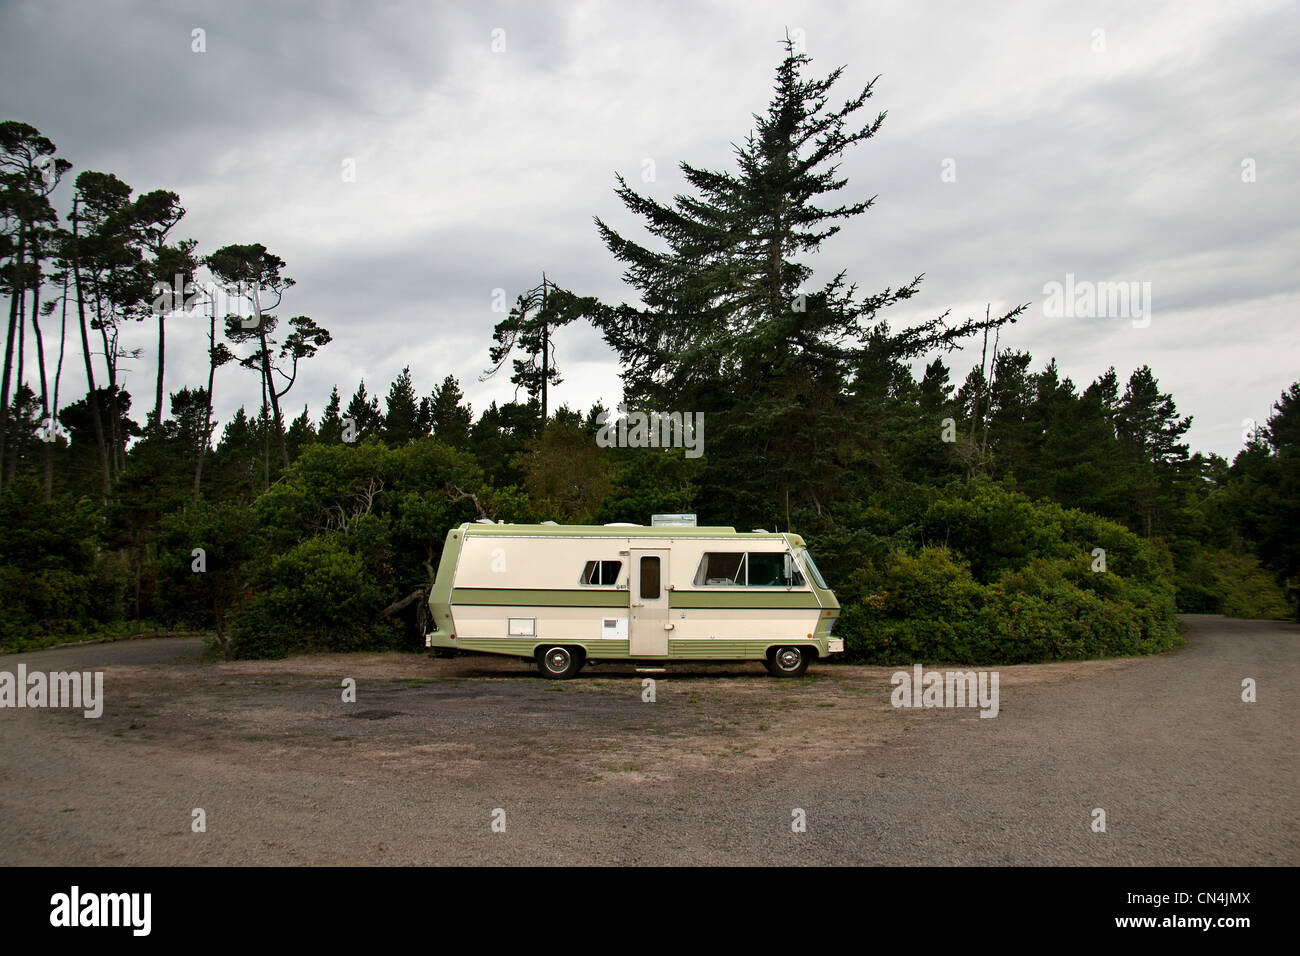 Camper van on secluded road - Stock Image